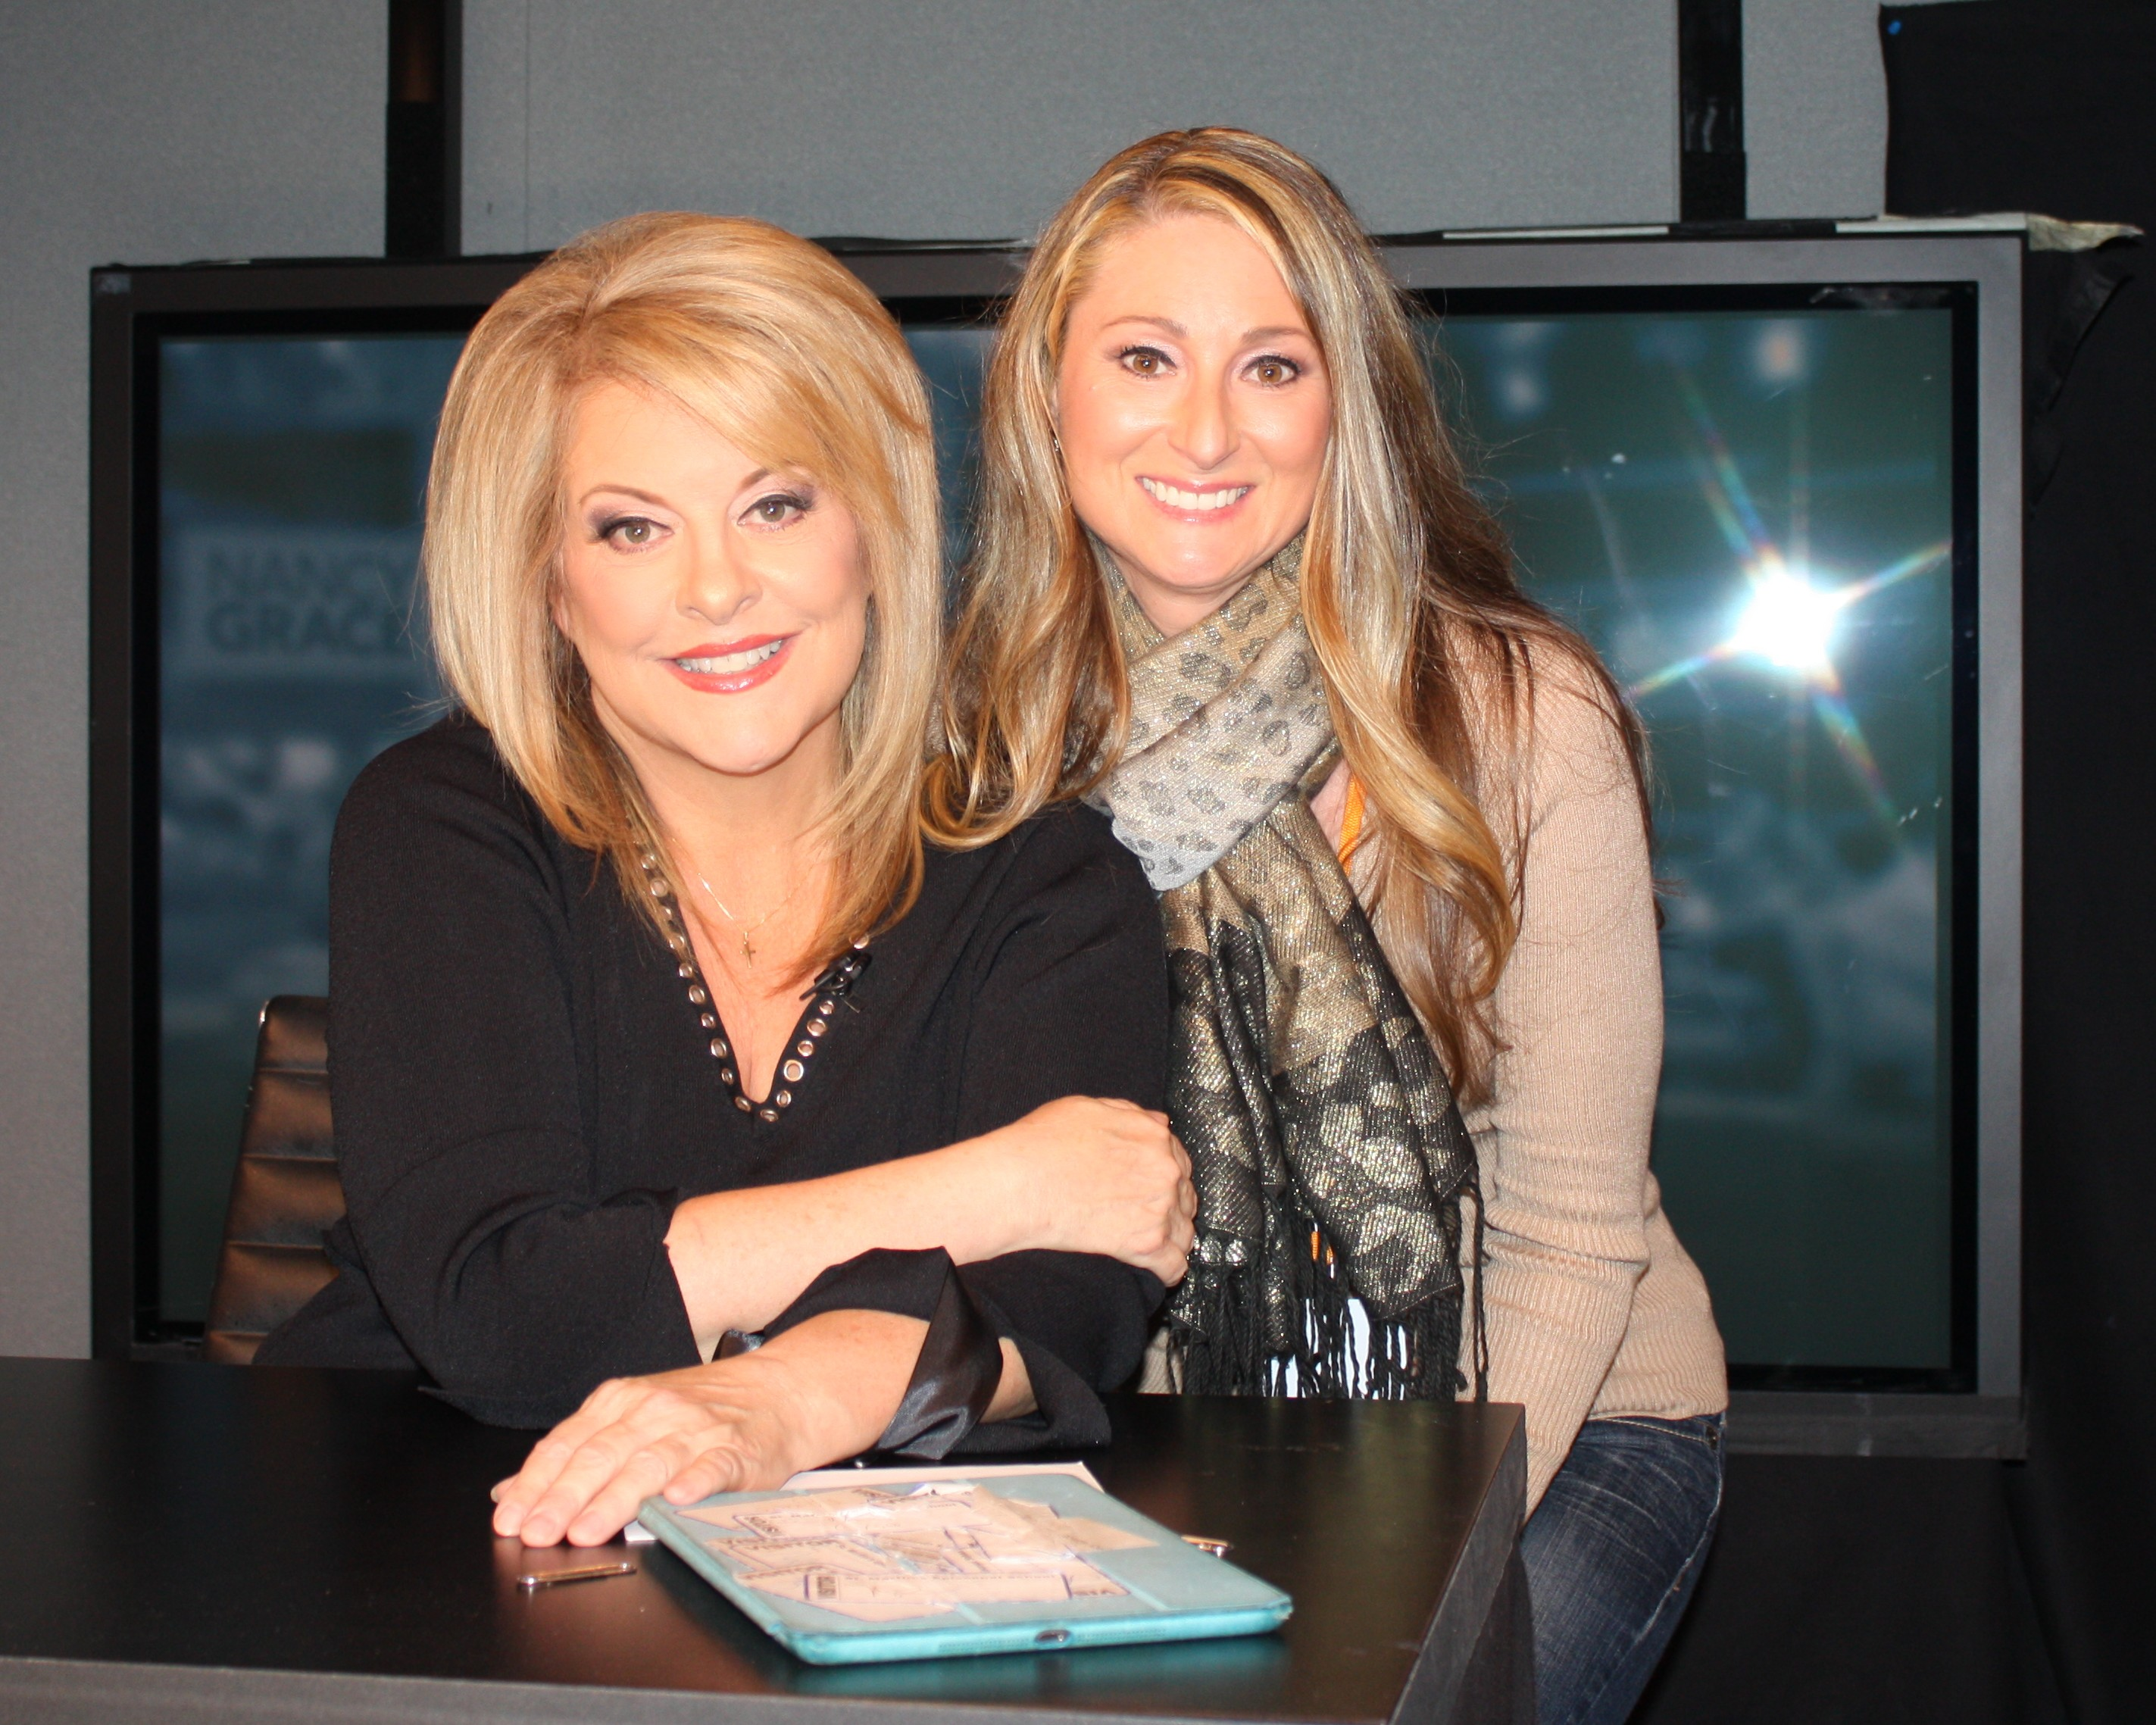 Stacie shared her story with HLN personality Nancy Grace.